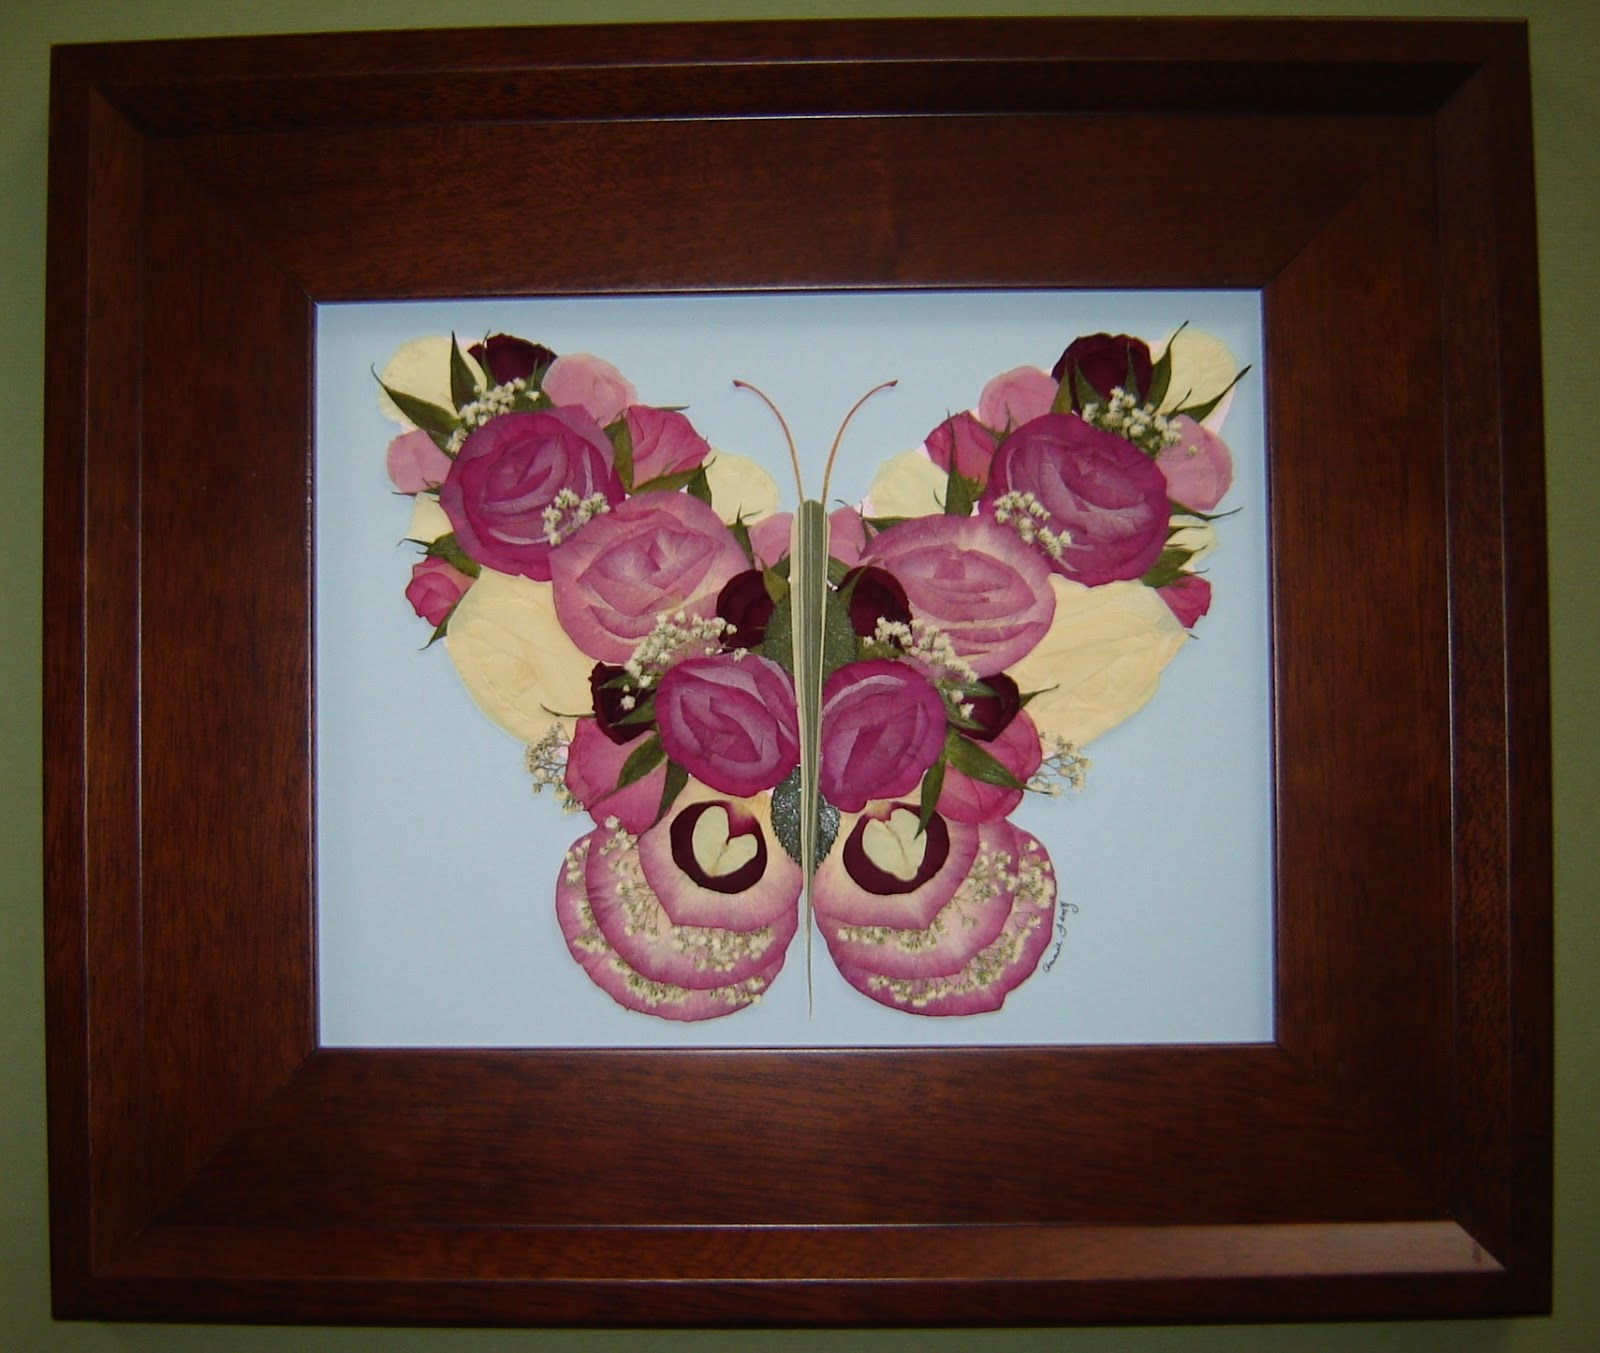 Pressed garden butterfly memorial the pressed flower art is made up of several types of izmirmasajfo